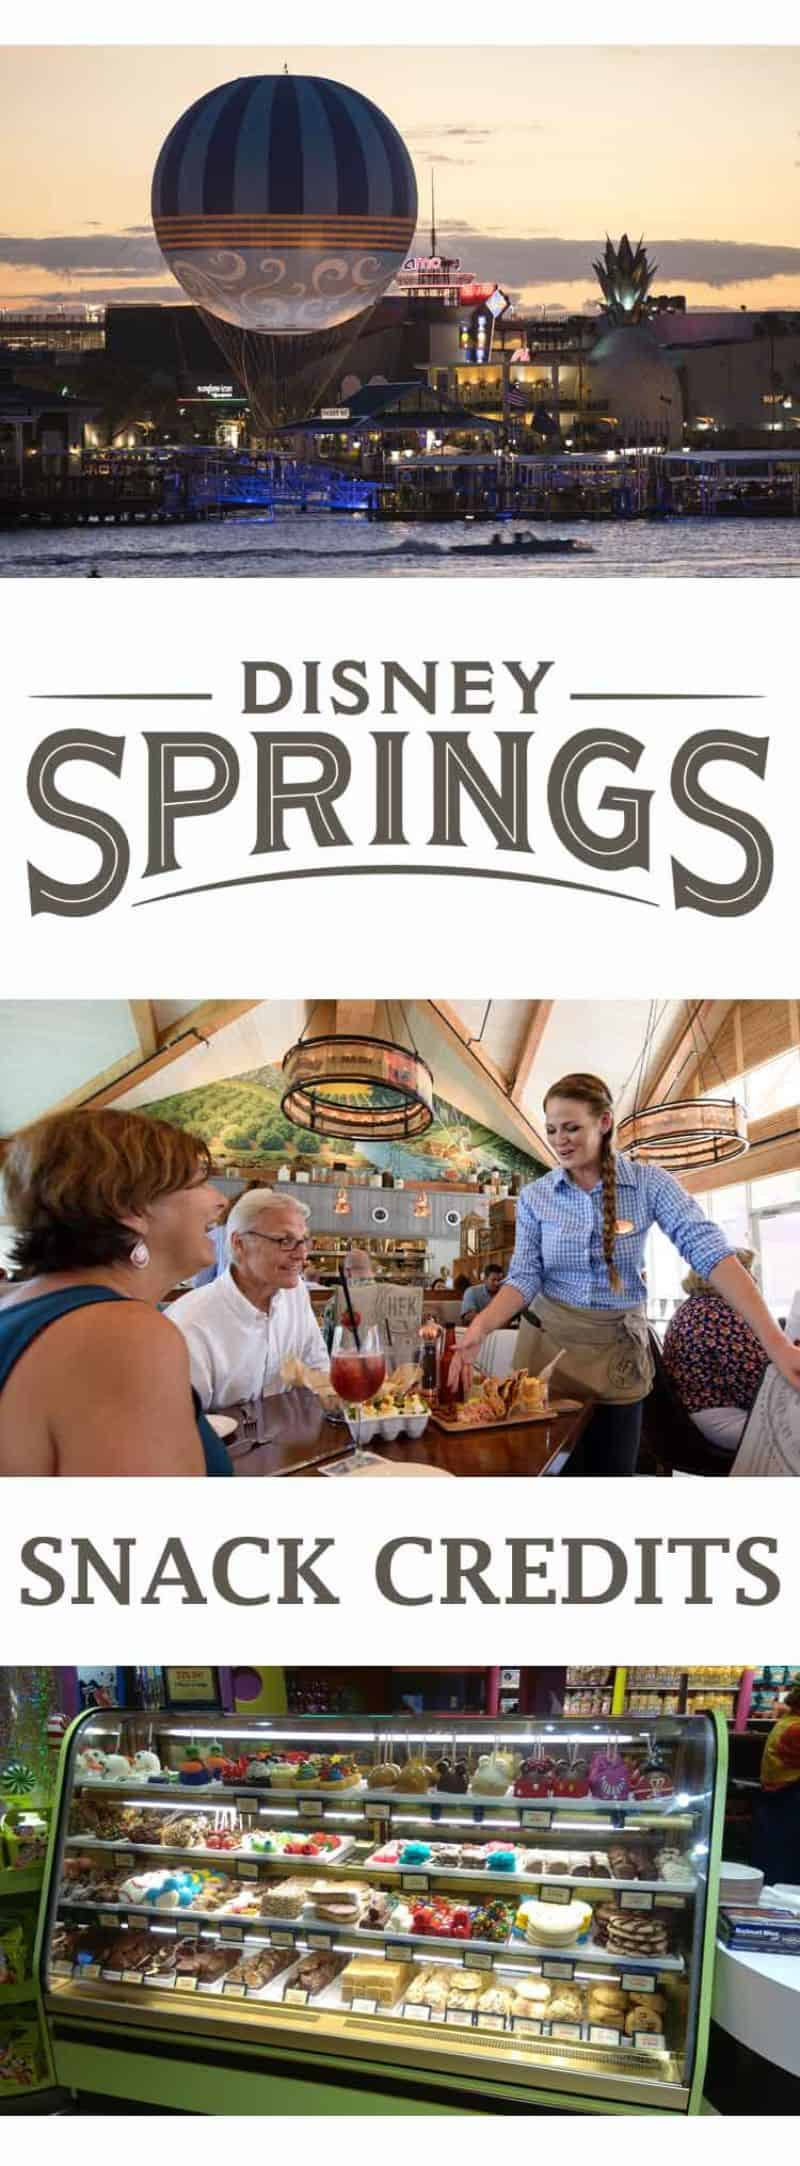 Best use of snack credits in Disney Springs